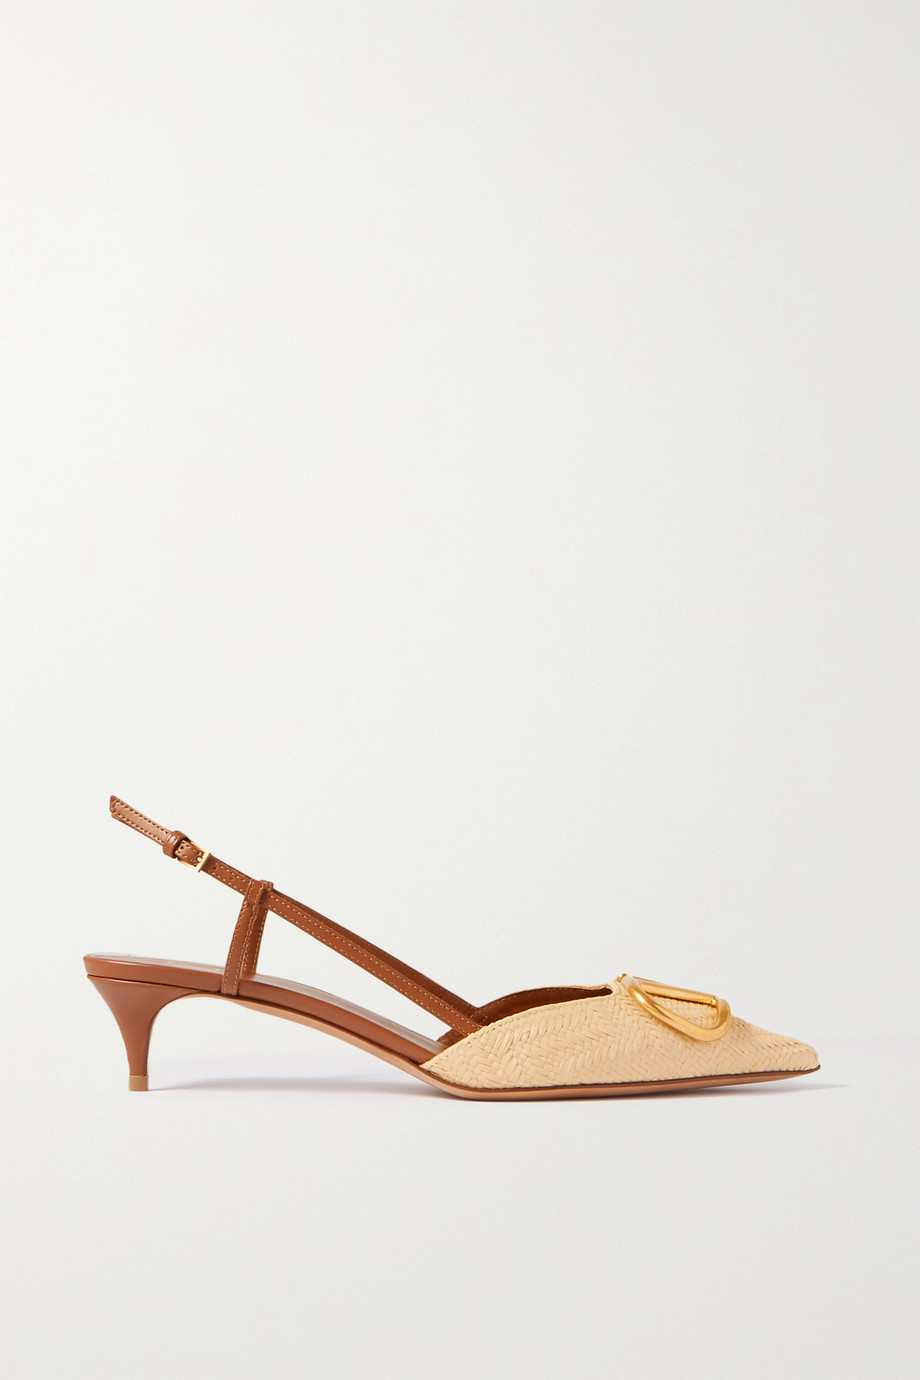 VALENTINO Valentino Garavani Go Logo 40 raffia and leather slingback pumps